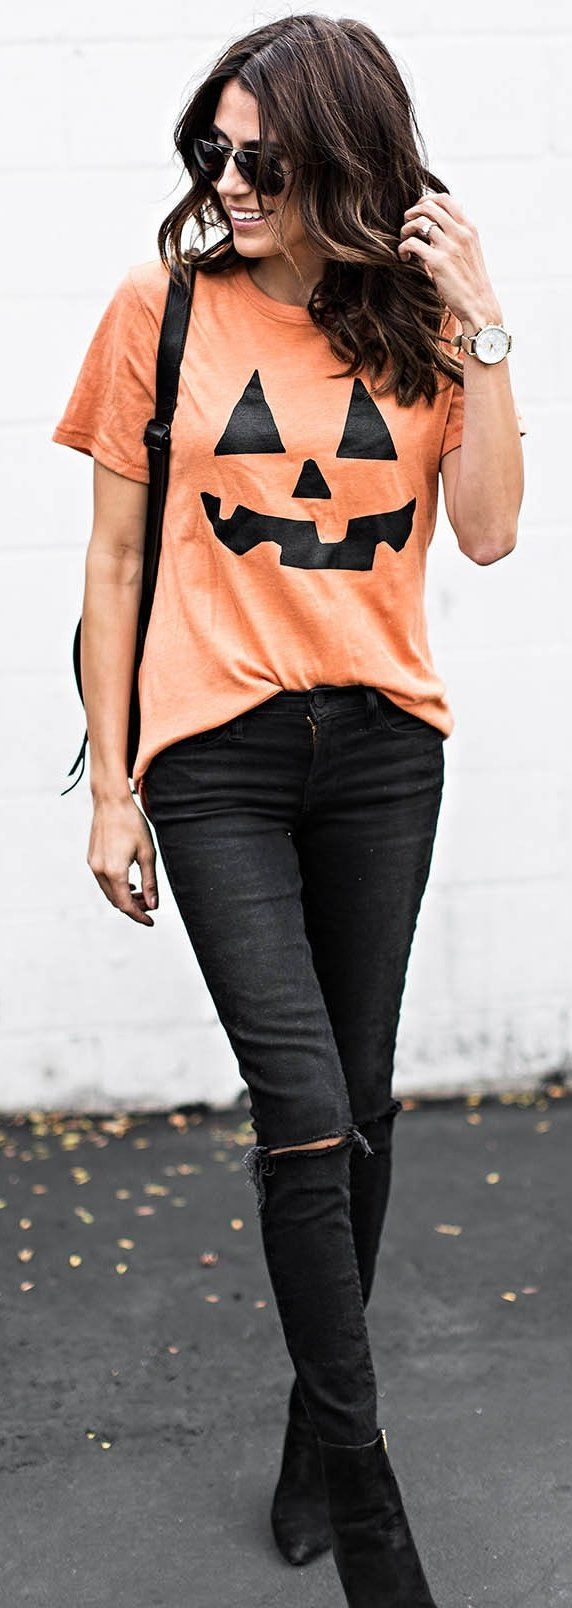 Pumpkin Tee + Black Pants | Halloween Outfit                                                                             Source